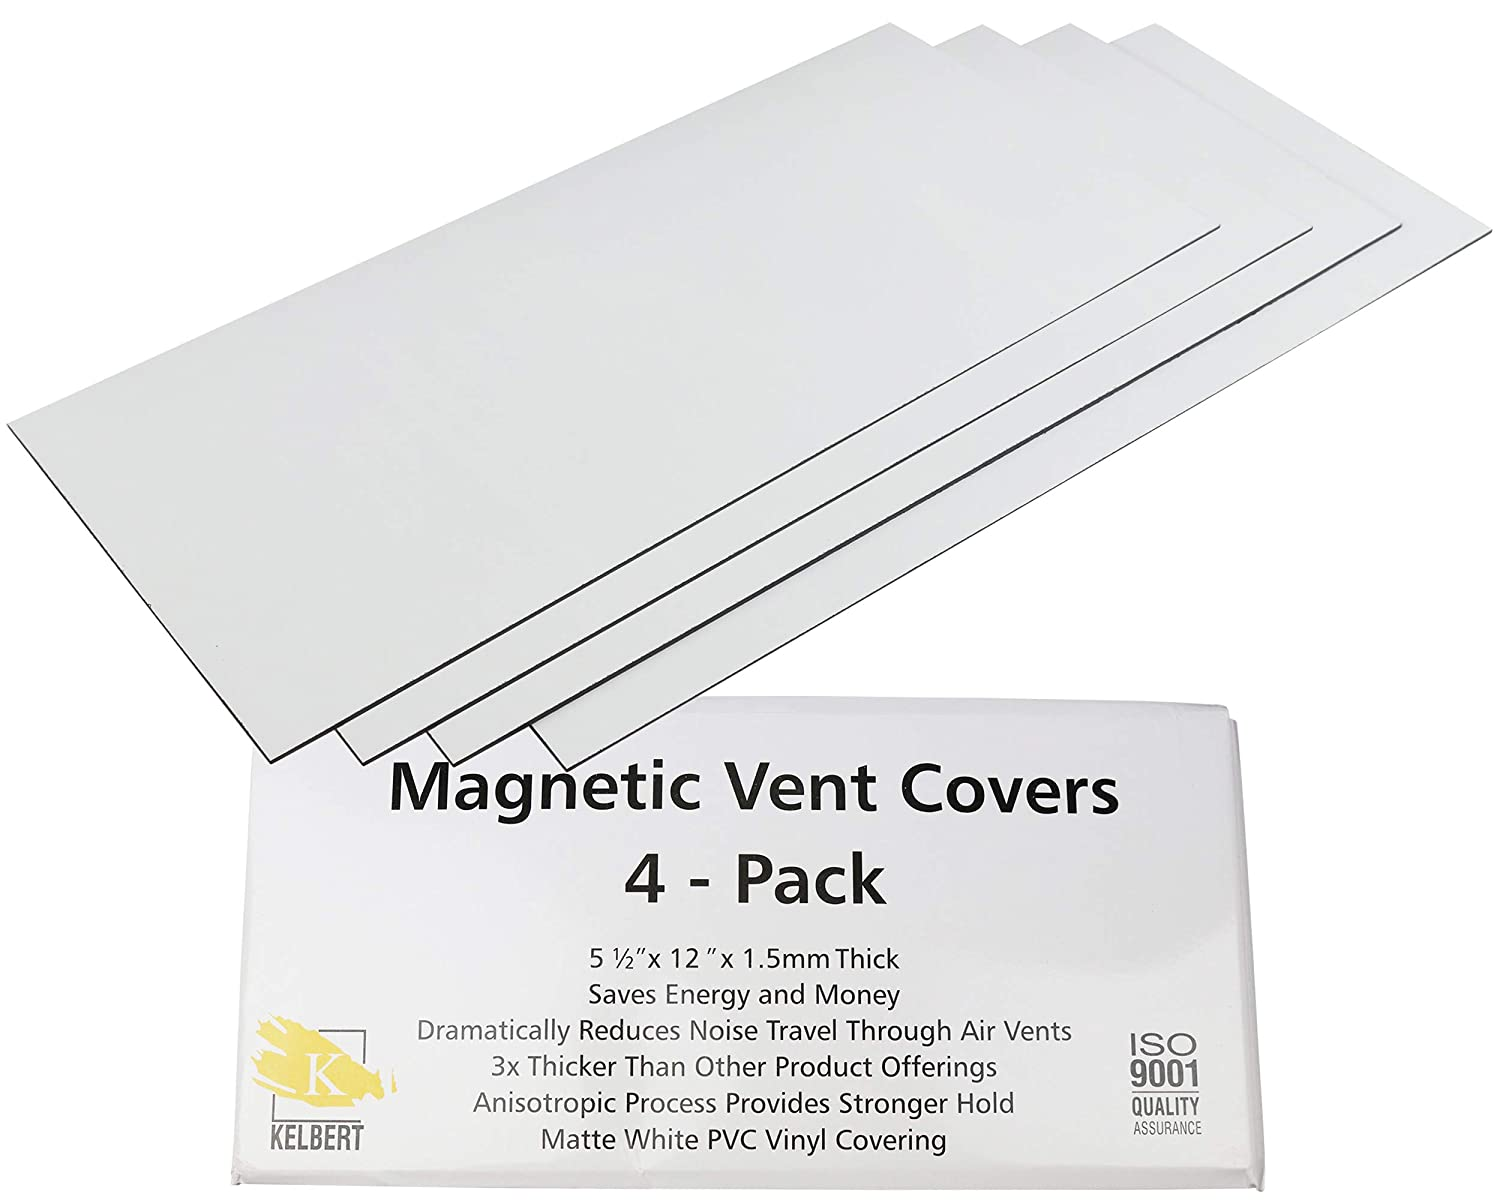 Magnetic Vent Cover – Super Strong and Extra Thick Wall/Floor/Ceiling Vent Covers (4-Pack) That Will Reduce Sound, Very Flexible, and Will Stick to Your Vents – Made from Premium Magnets by Kelbert